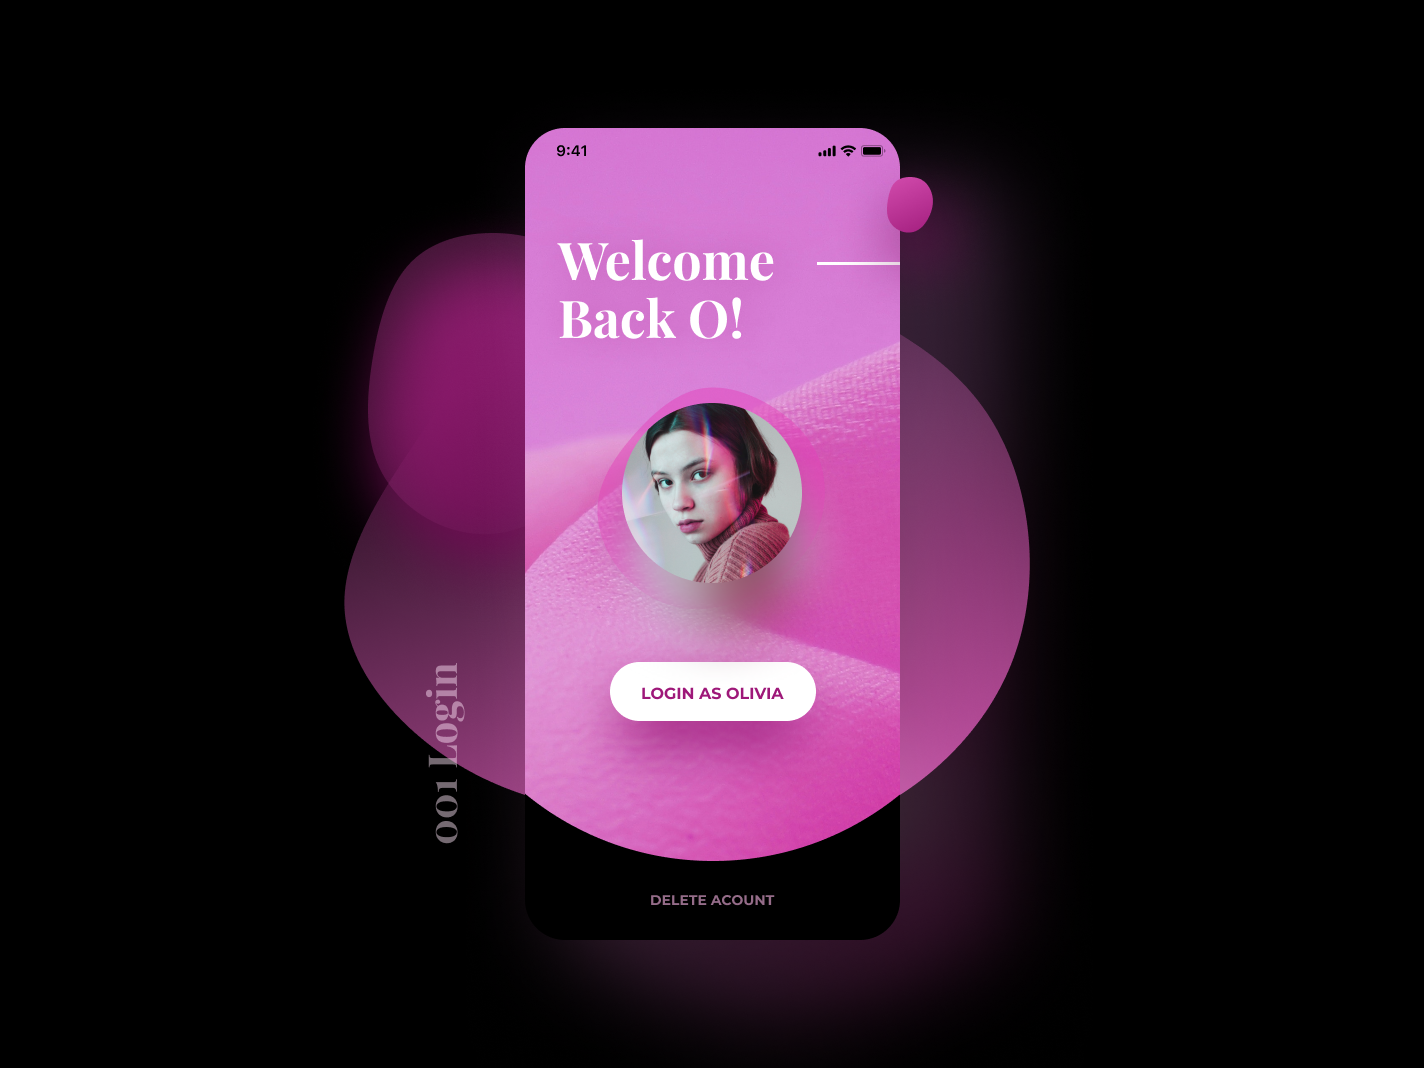 ✨Daily Design ✨ 001 Login trendy futuristic playfair display playful modern layout rounded soft gradient pink blob vector colourful card clean simple design challenge daily ui